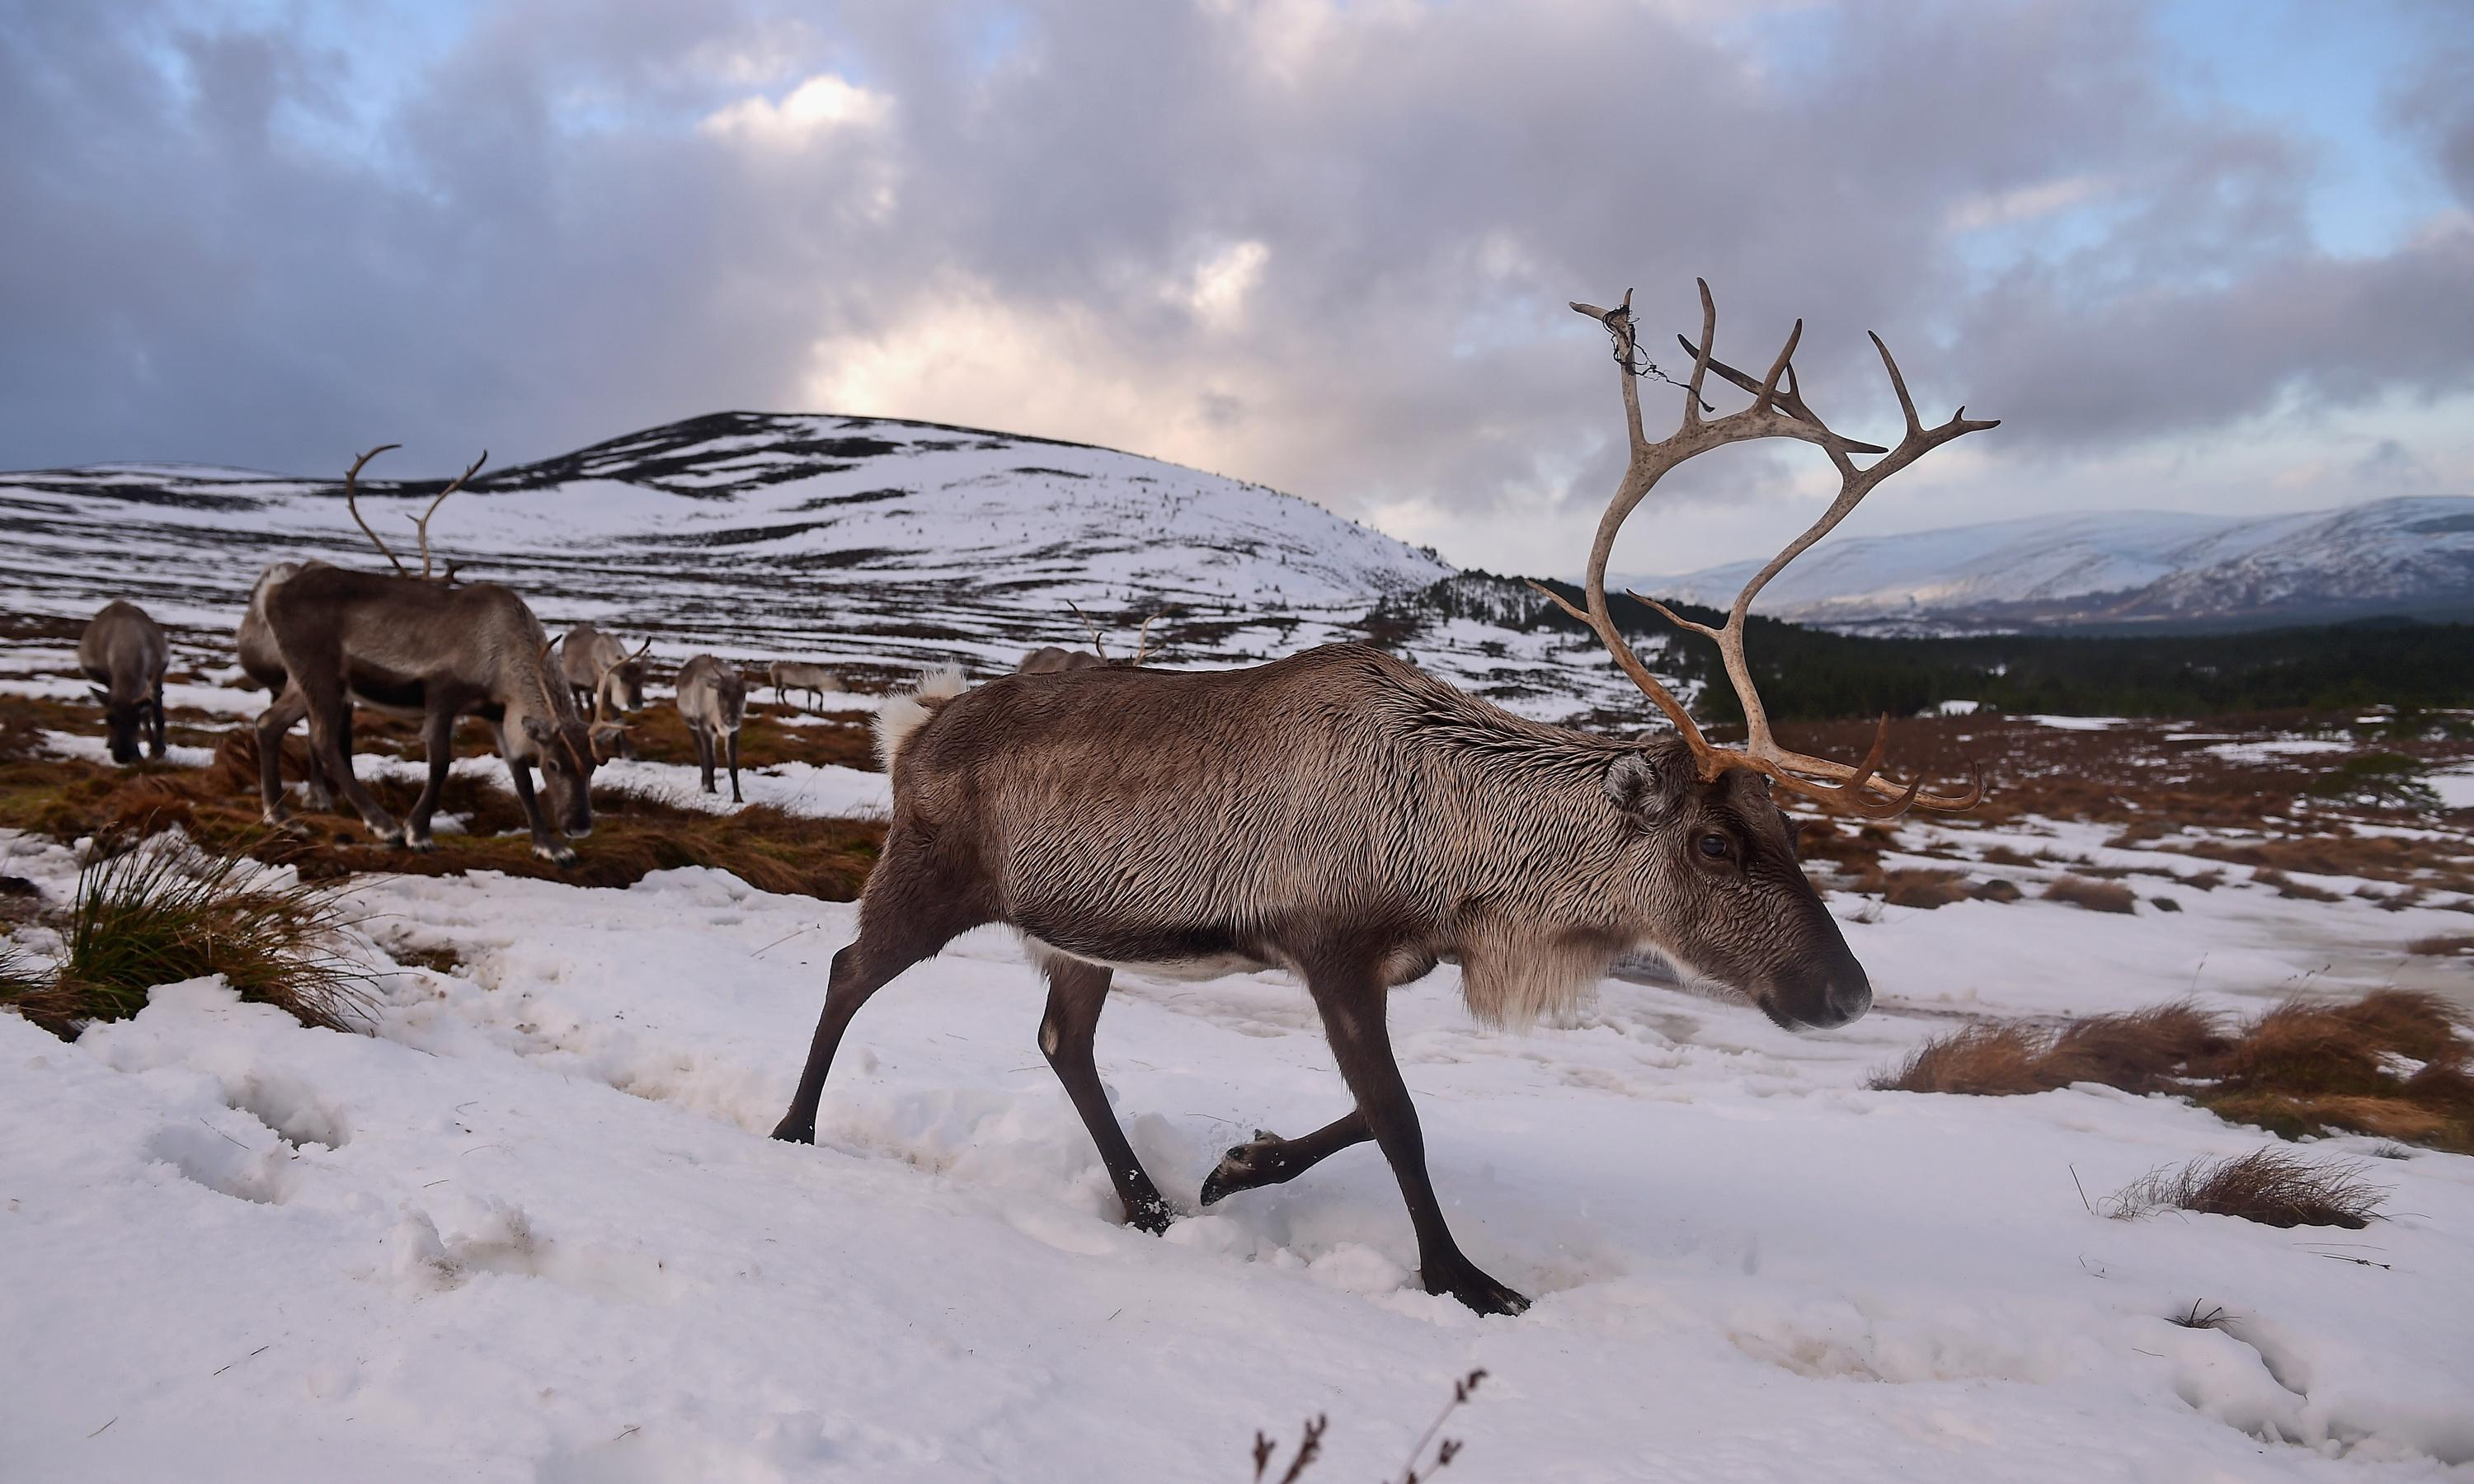 Arctic conditions force Cairngorm reindeer down mountain - Country diary, 21 April 1969